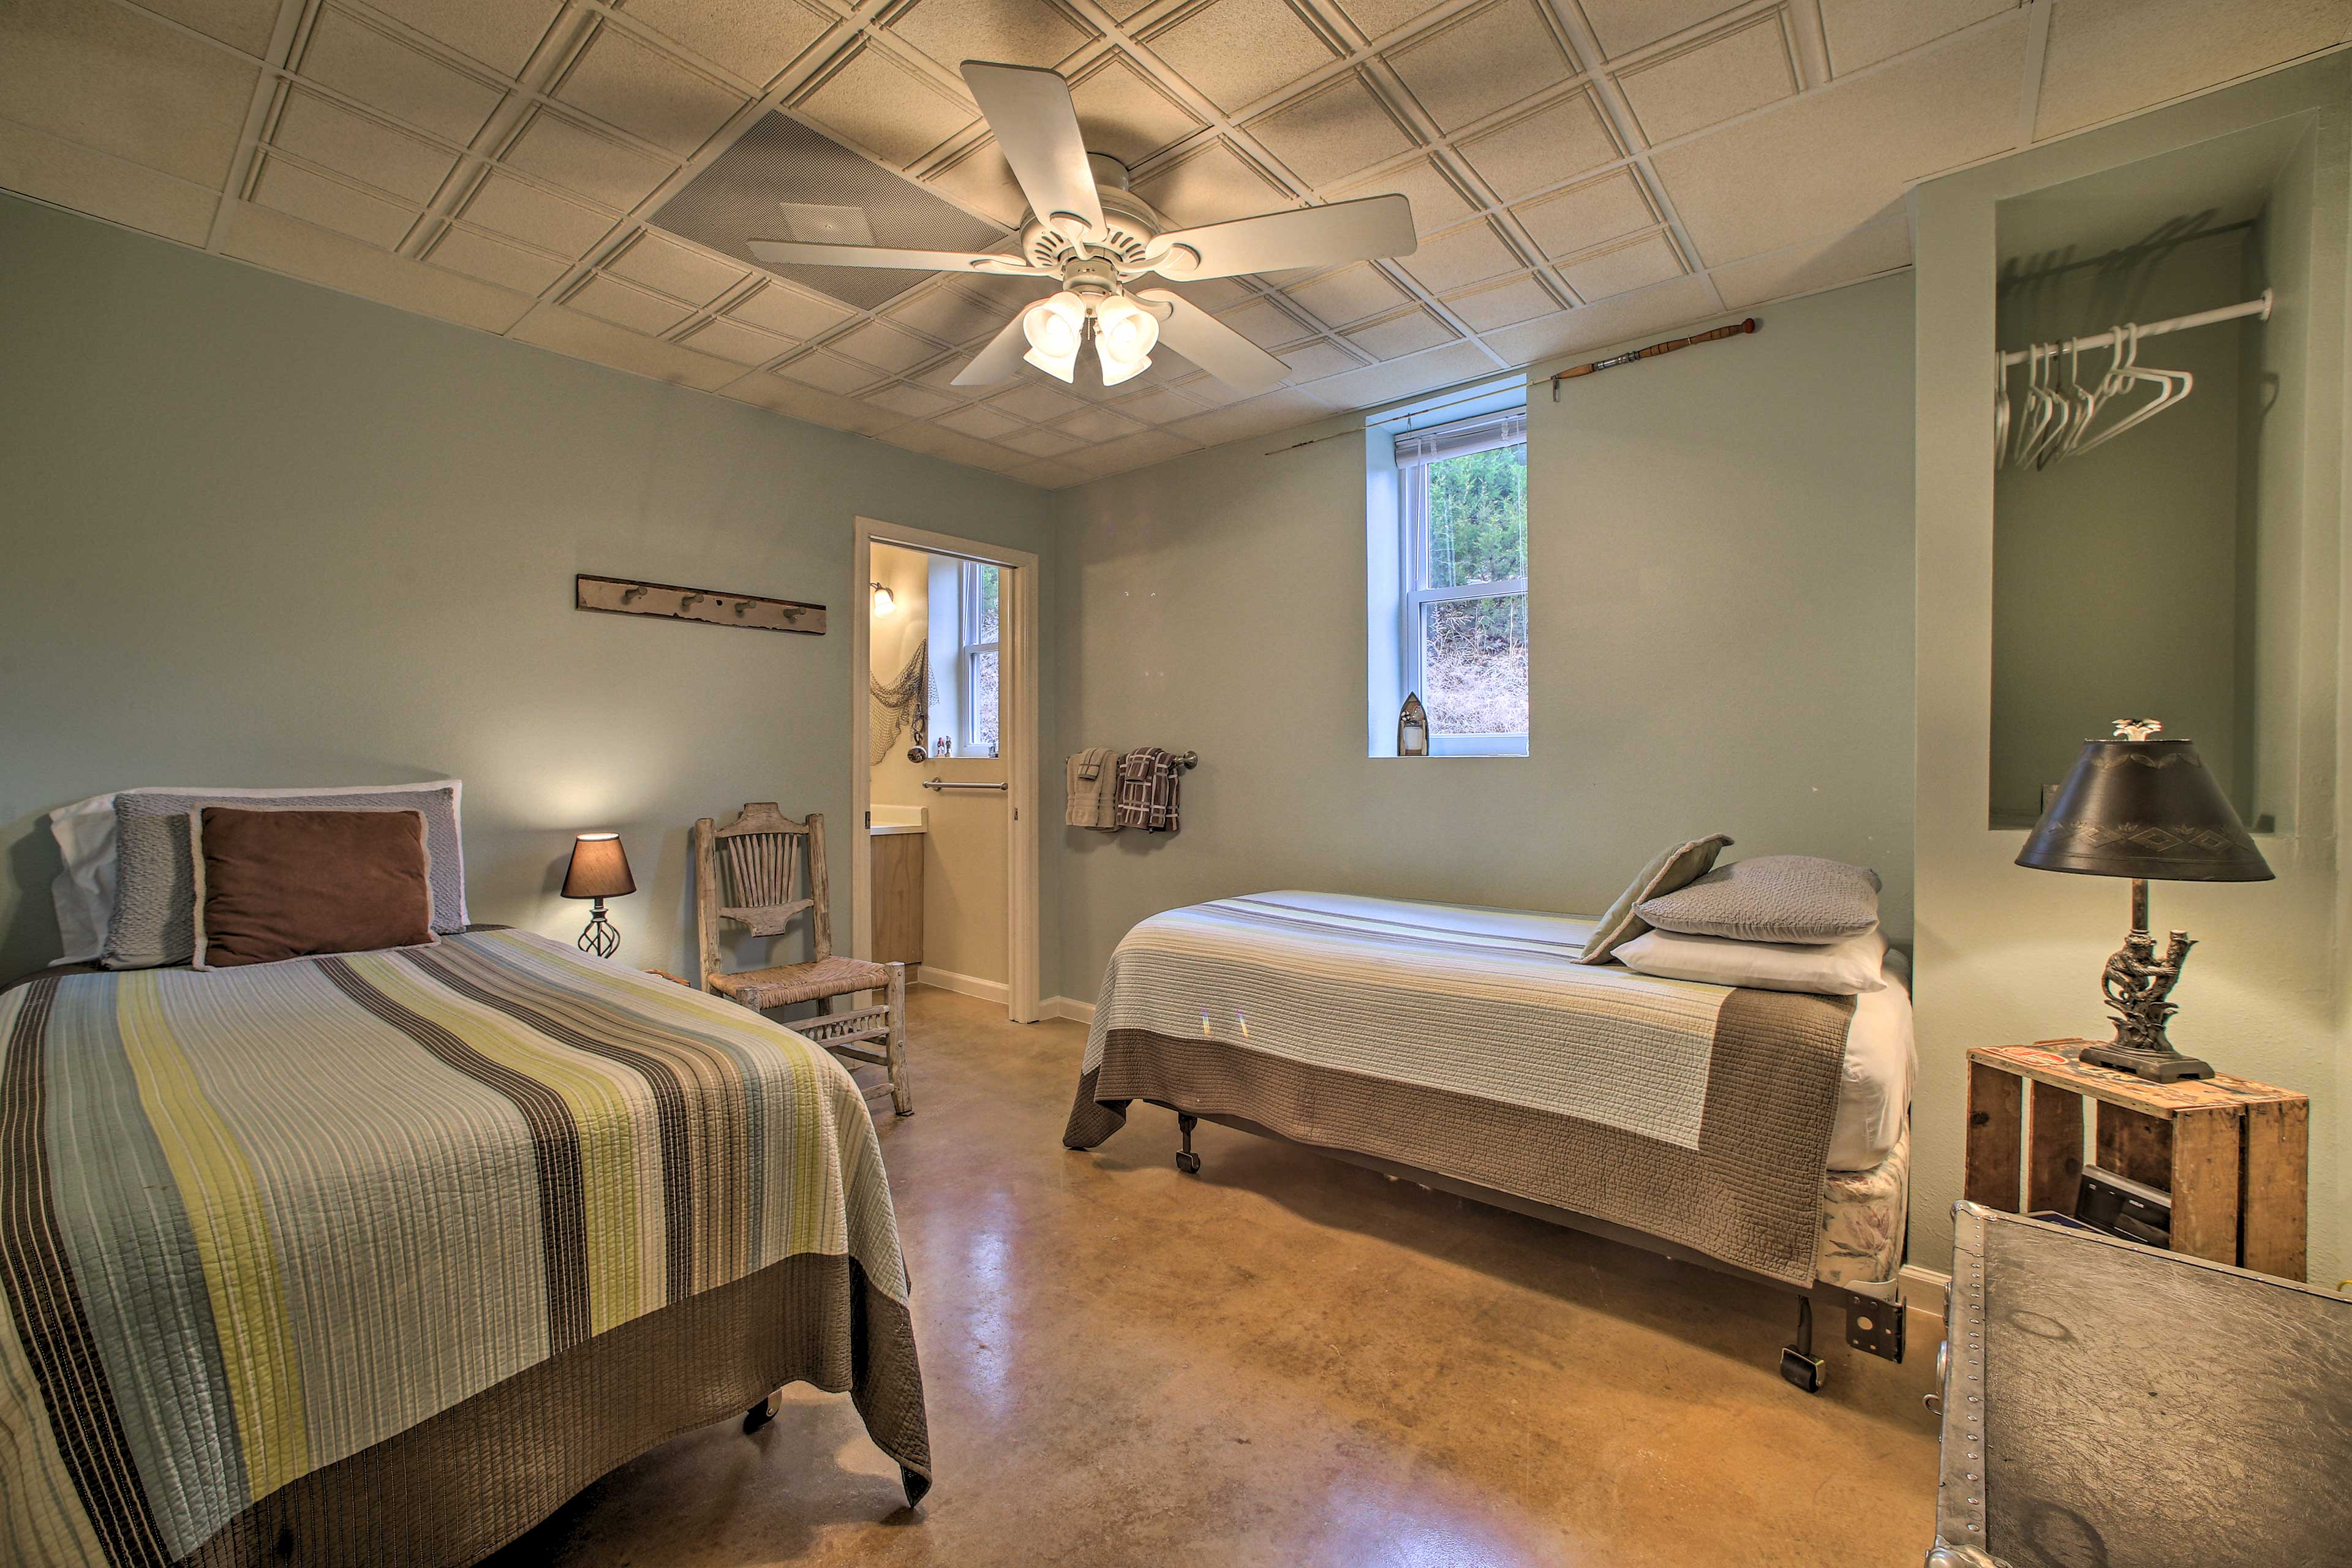 In addition to the twin beds, there are 2 twin air mattresses available to use.